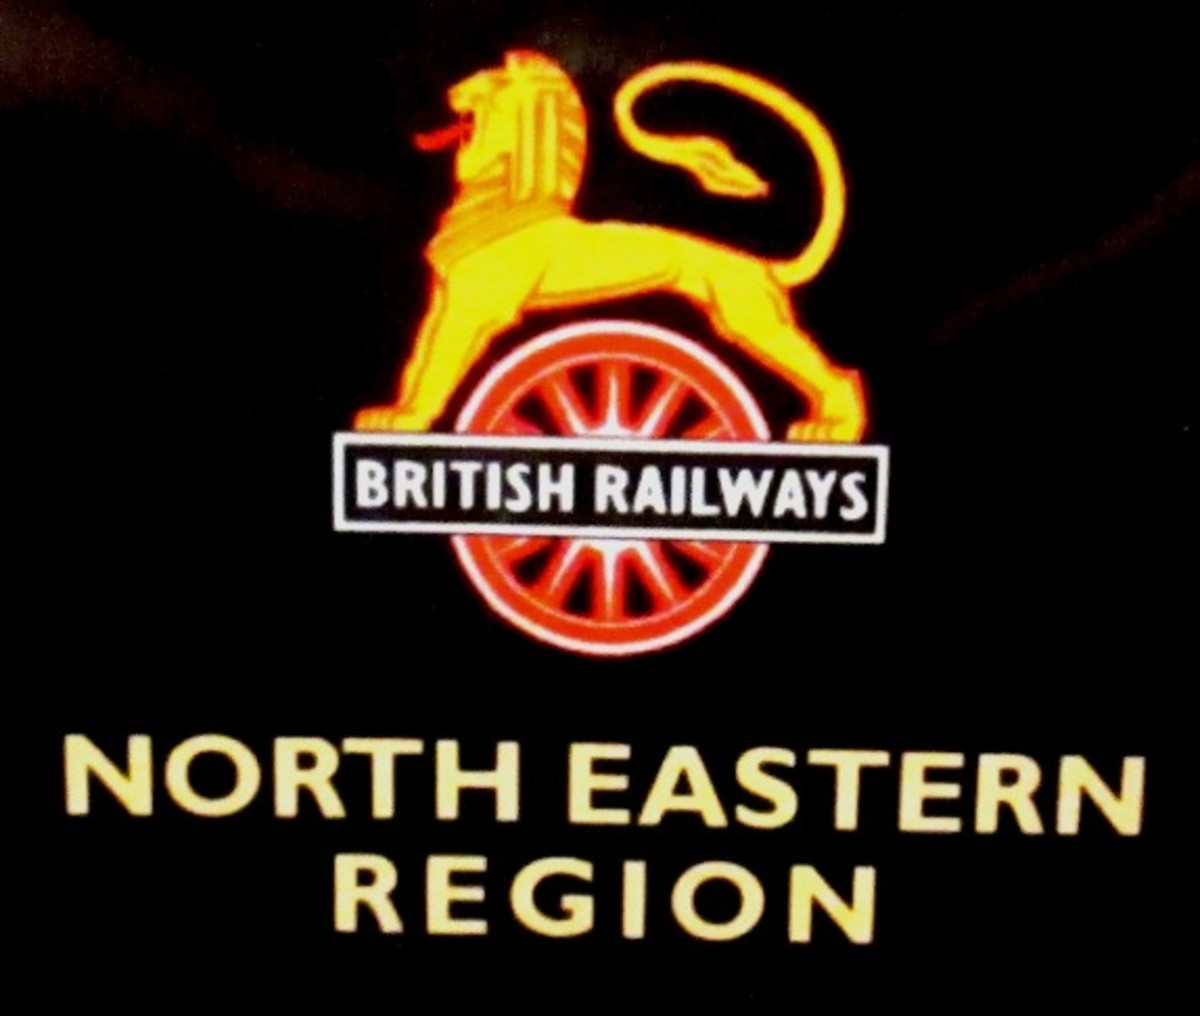 From Selby north to Berwick-upon-Tweed and inland from the coast as far as Leeds and Hawes (at least until 1954), the North Eastern Region of British Railways was the old North Eastern Railway territory in less prosperous times